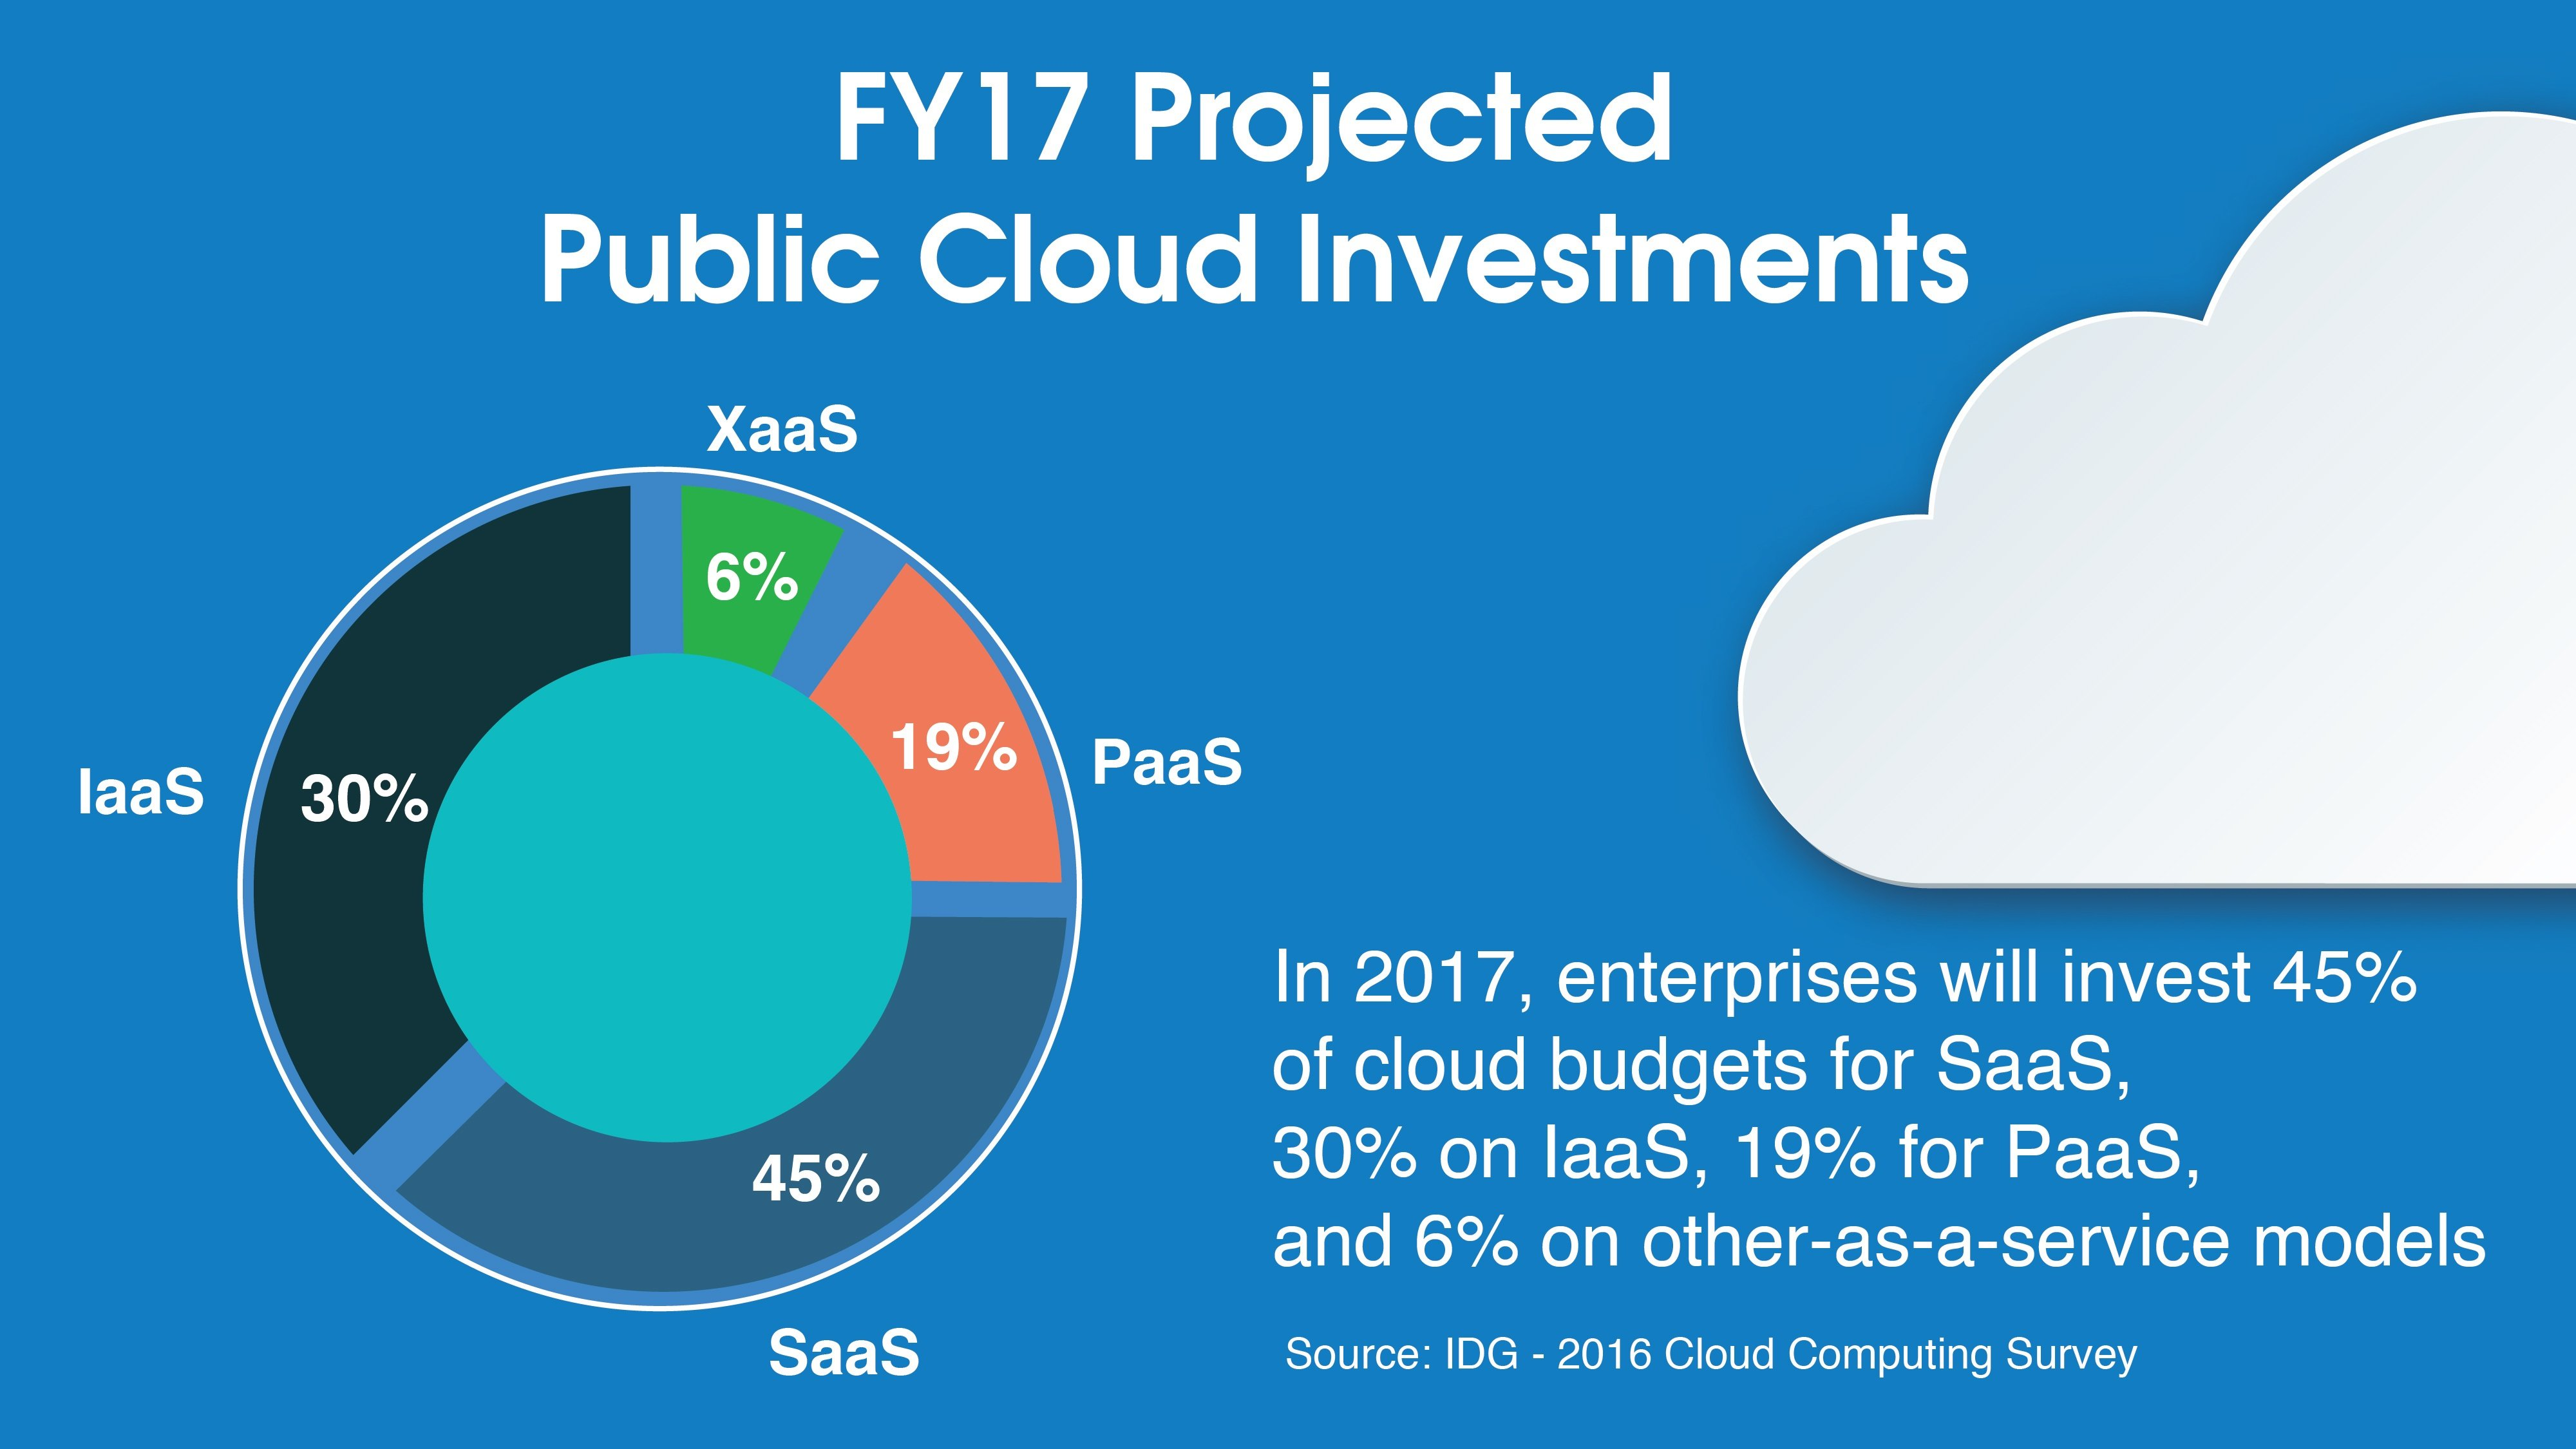 FY17 Projected Public Cloud Investments